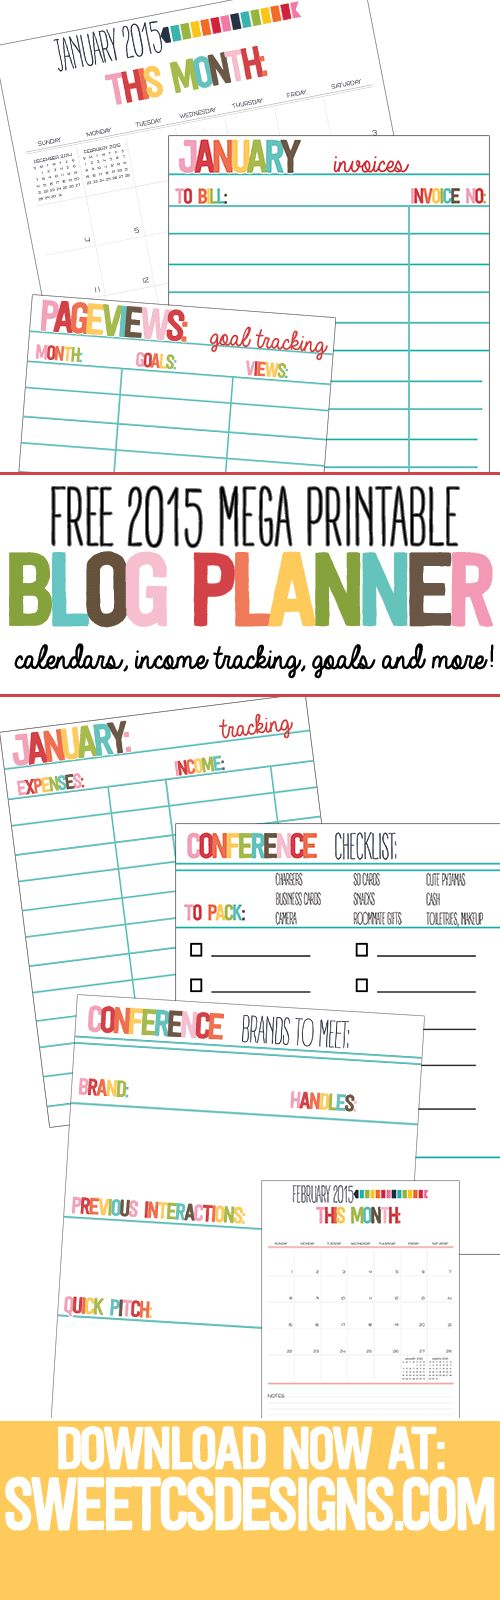 FREE 2015 Mega Blog Planner Printable Pack- over 58 pages of calendars, to do list worksheets, invoice trackers, cashflow statements and more!